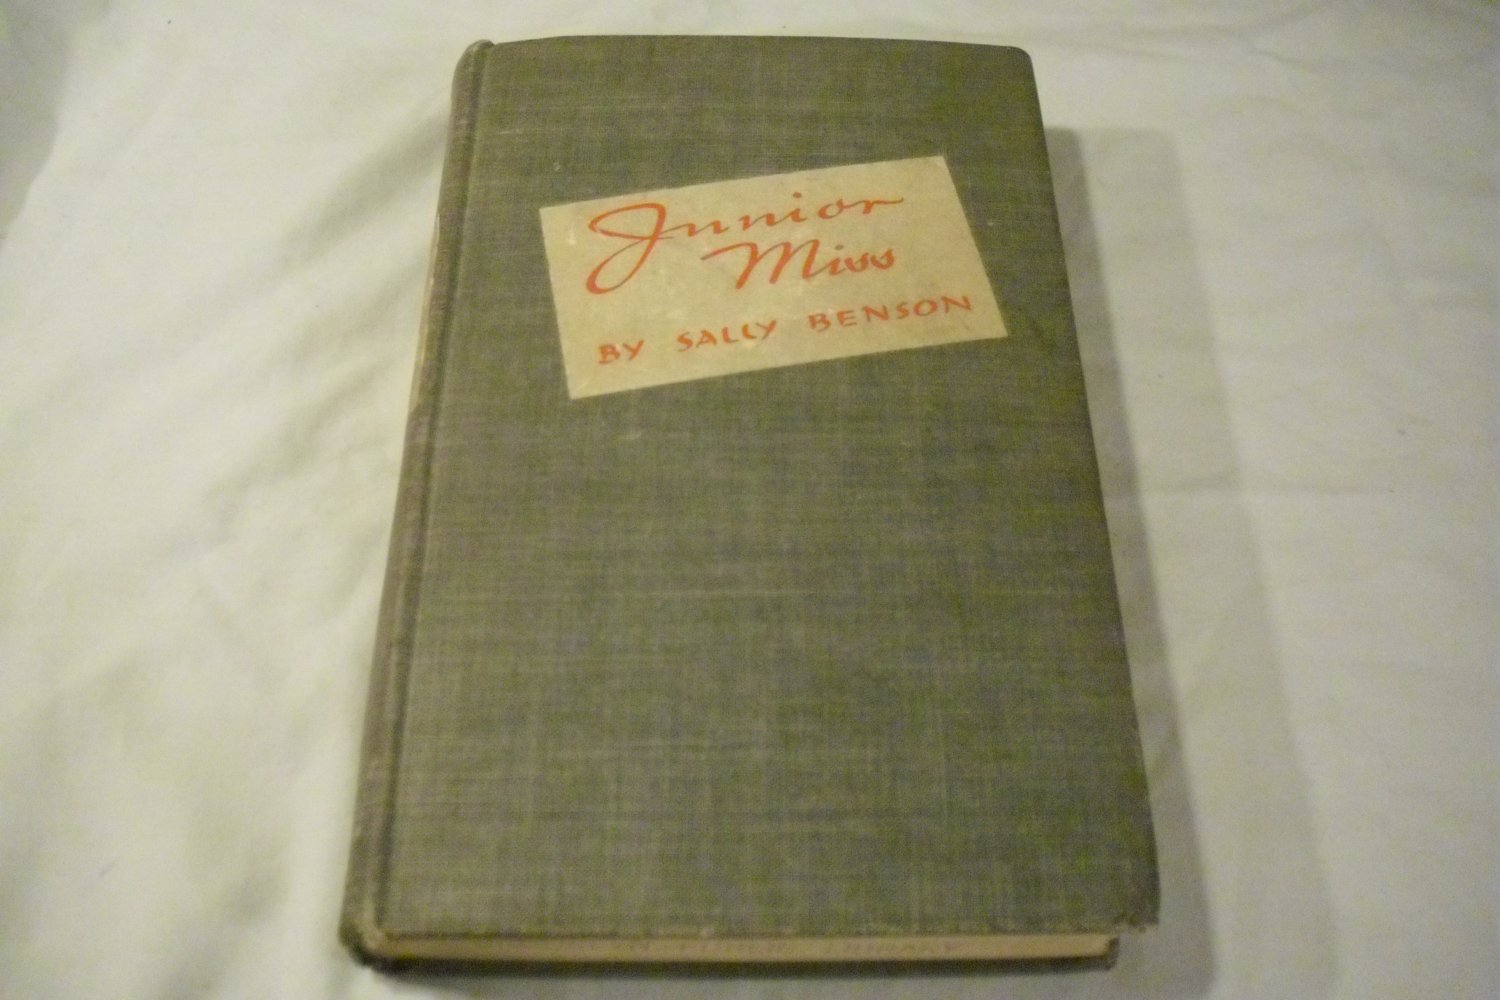 Junior miss by Sally Benson (1941)